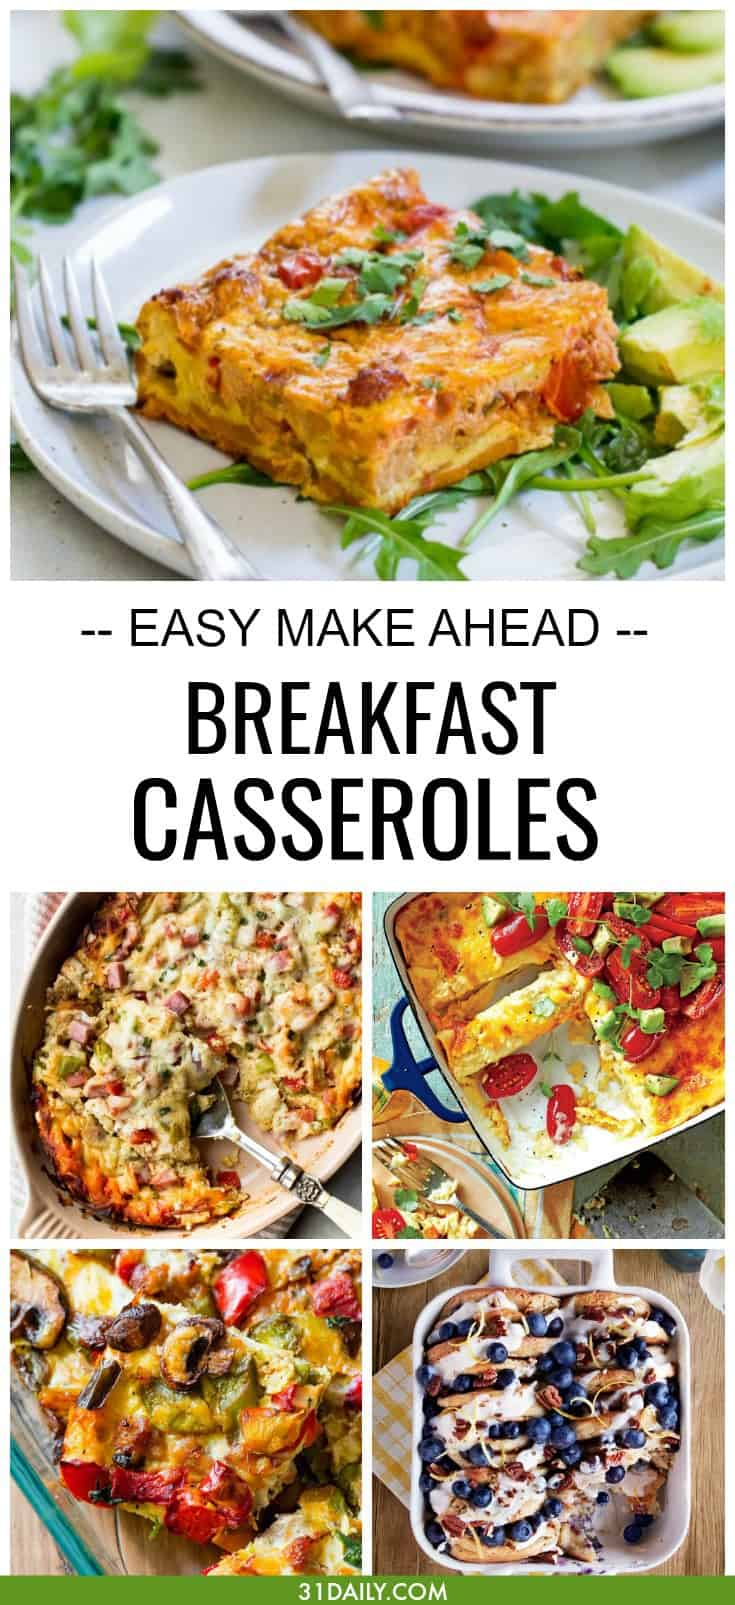 Make Ahead Breakfast Casseroles to Feed Your Crowd | 31Daily.com